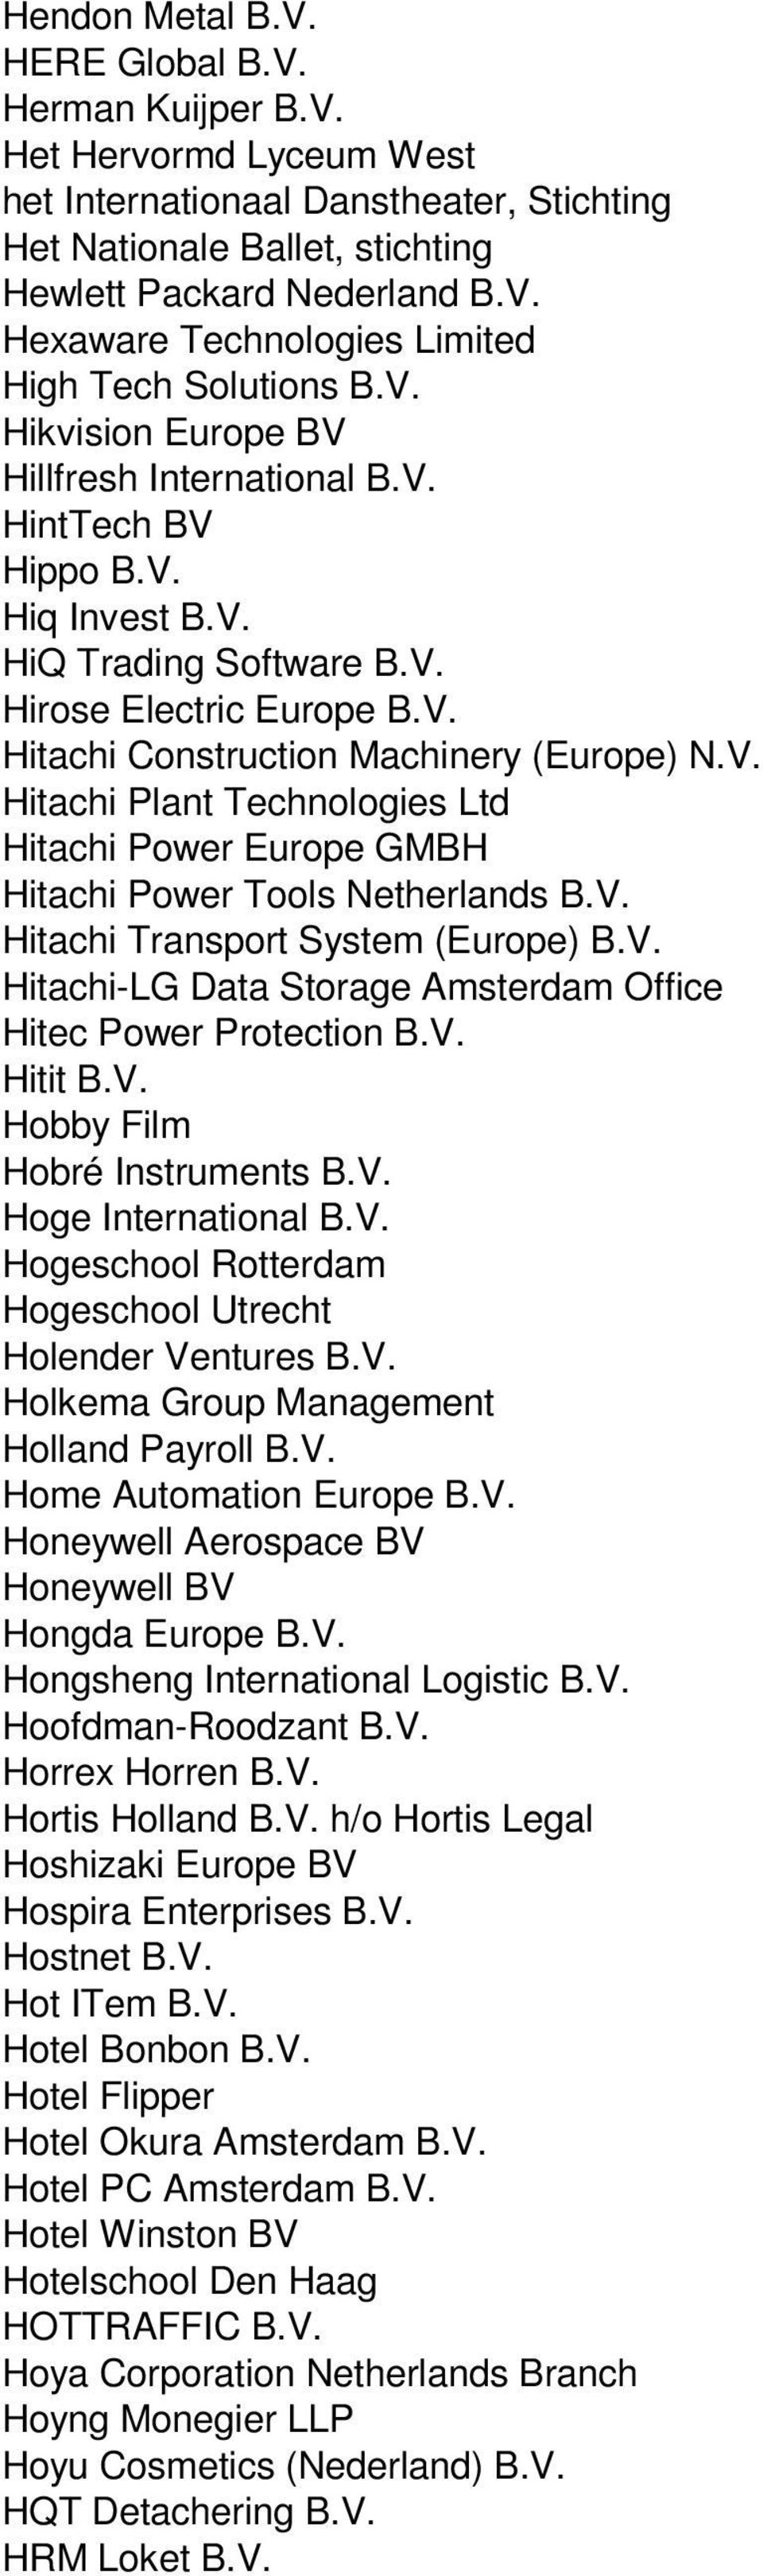 V. Hitachi Transport System (Europe) B.V. Hitachi-LG Data Storage Amsterdam Office Hitec Power Protection B.V. Hitit B.V. Hobby Film Hobré Instruments B.V. Hoge International B.V. Hogeschool Rotterdam Hogeschool Utrecht Holender Ventures B.